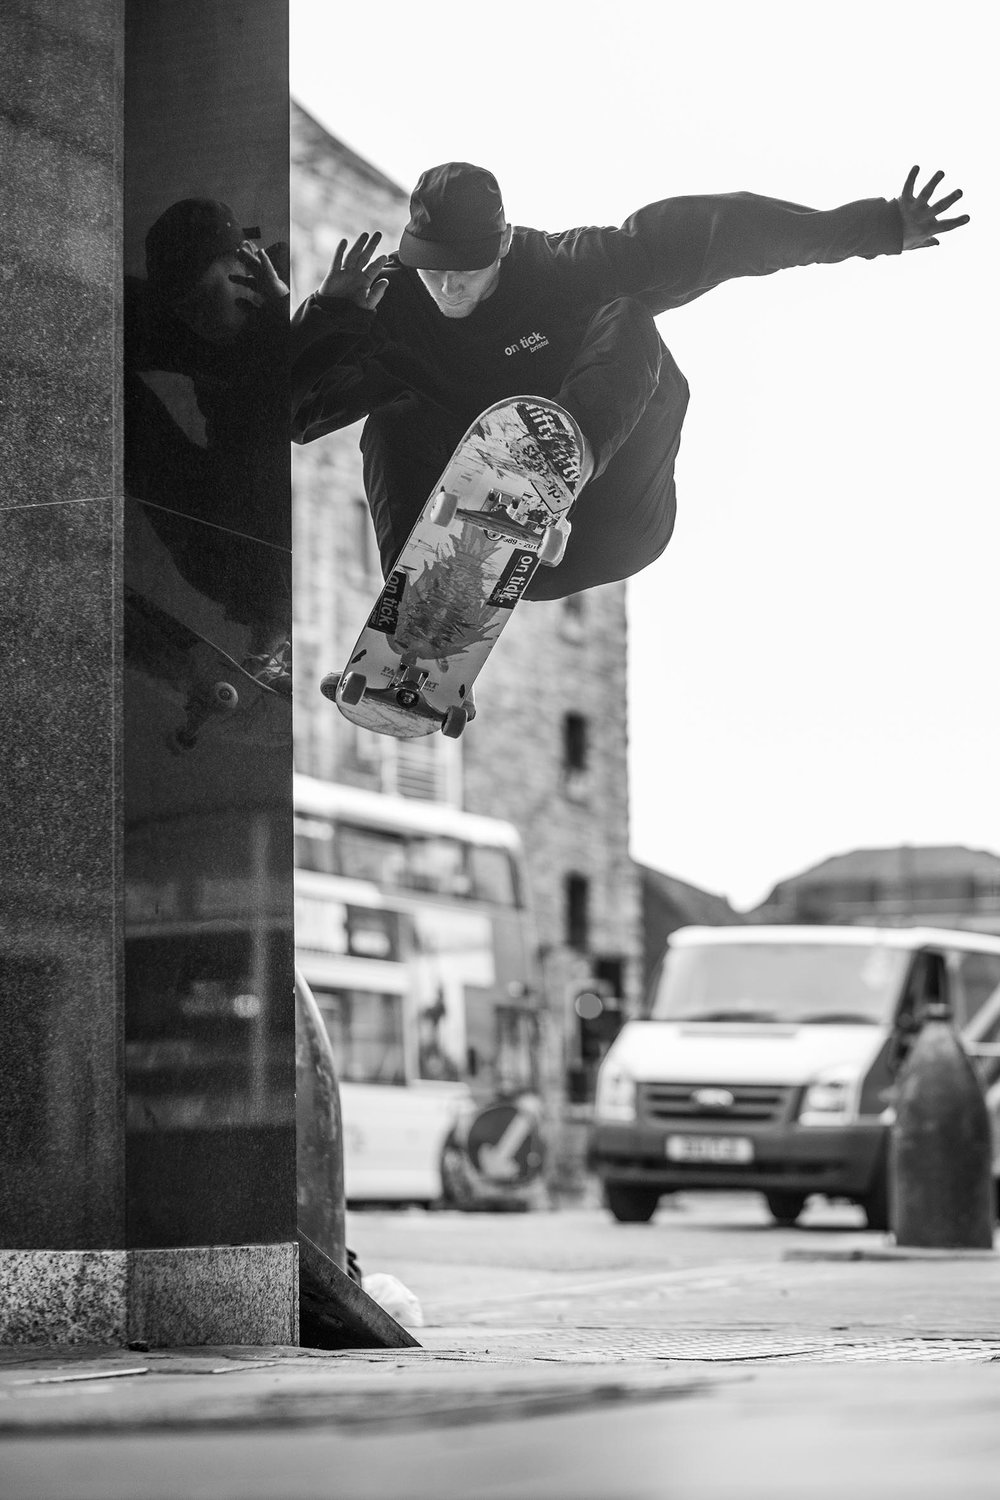 Phil Parker - frontside wallie